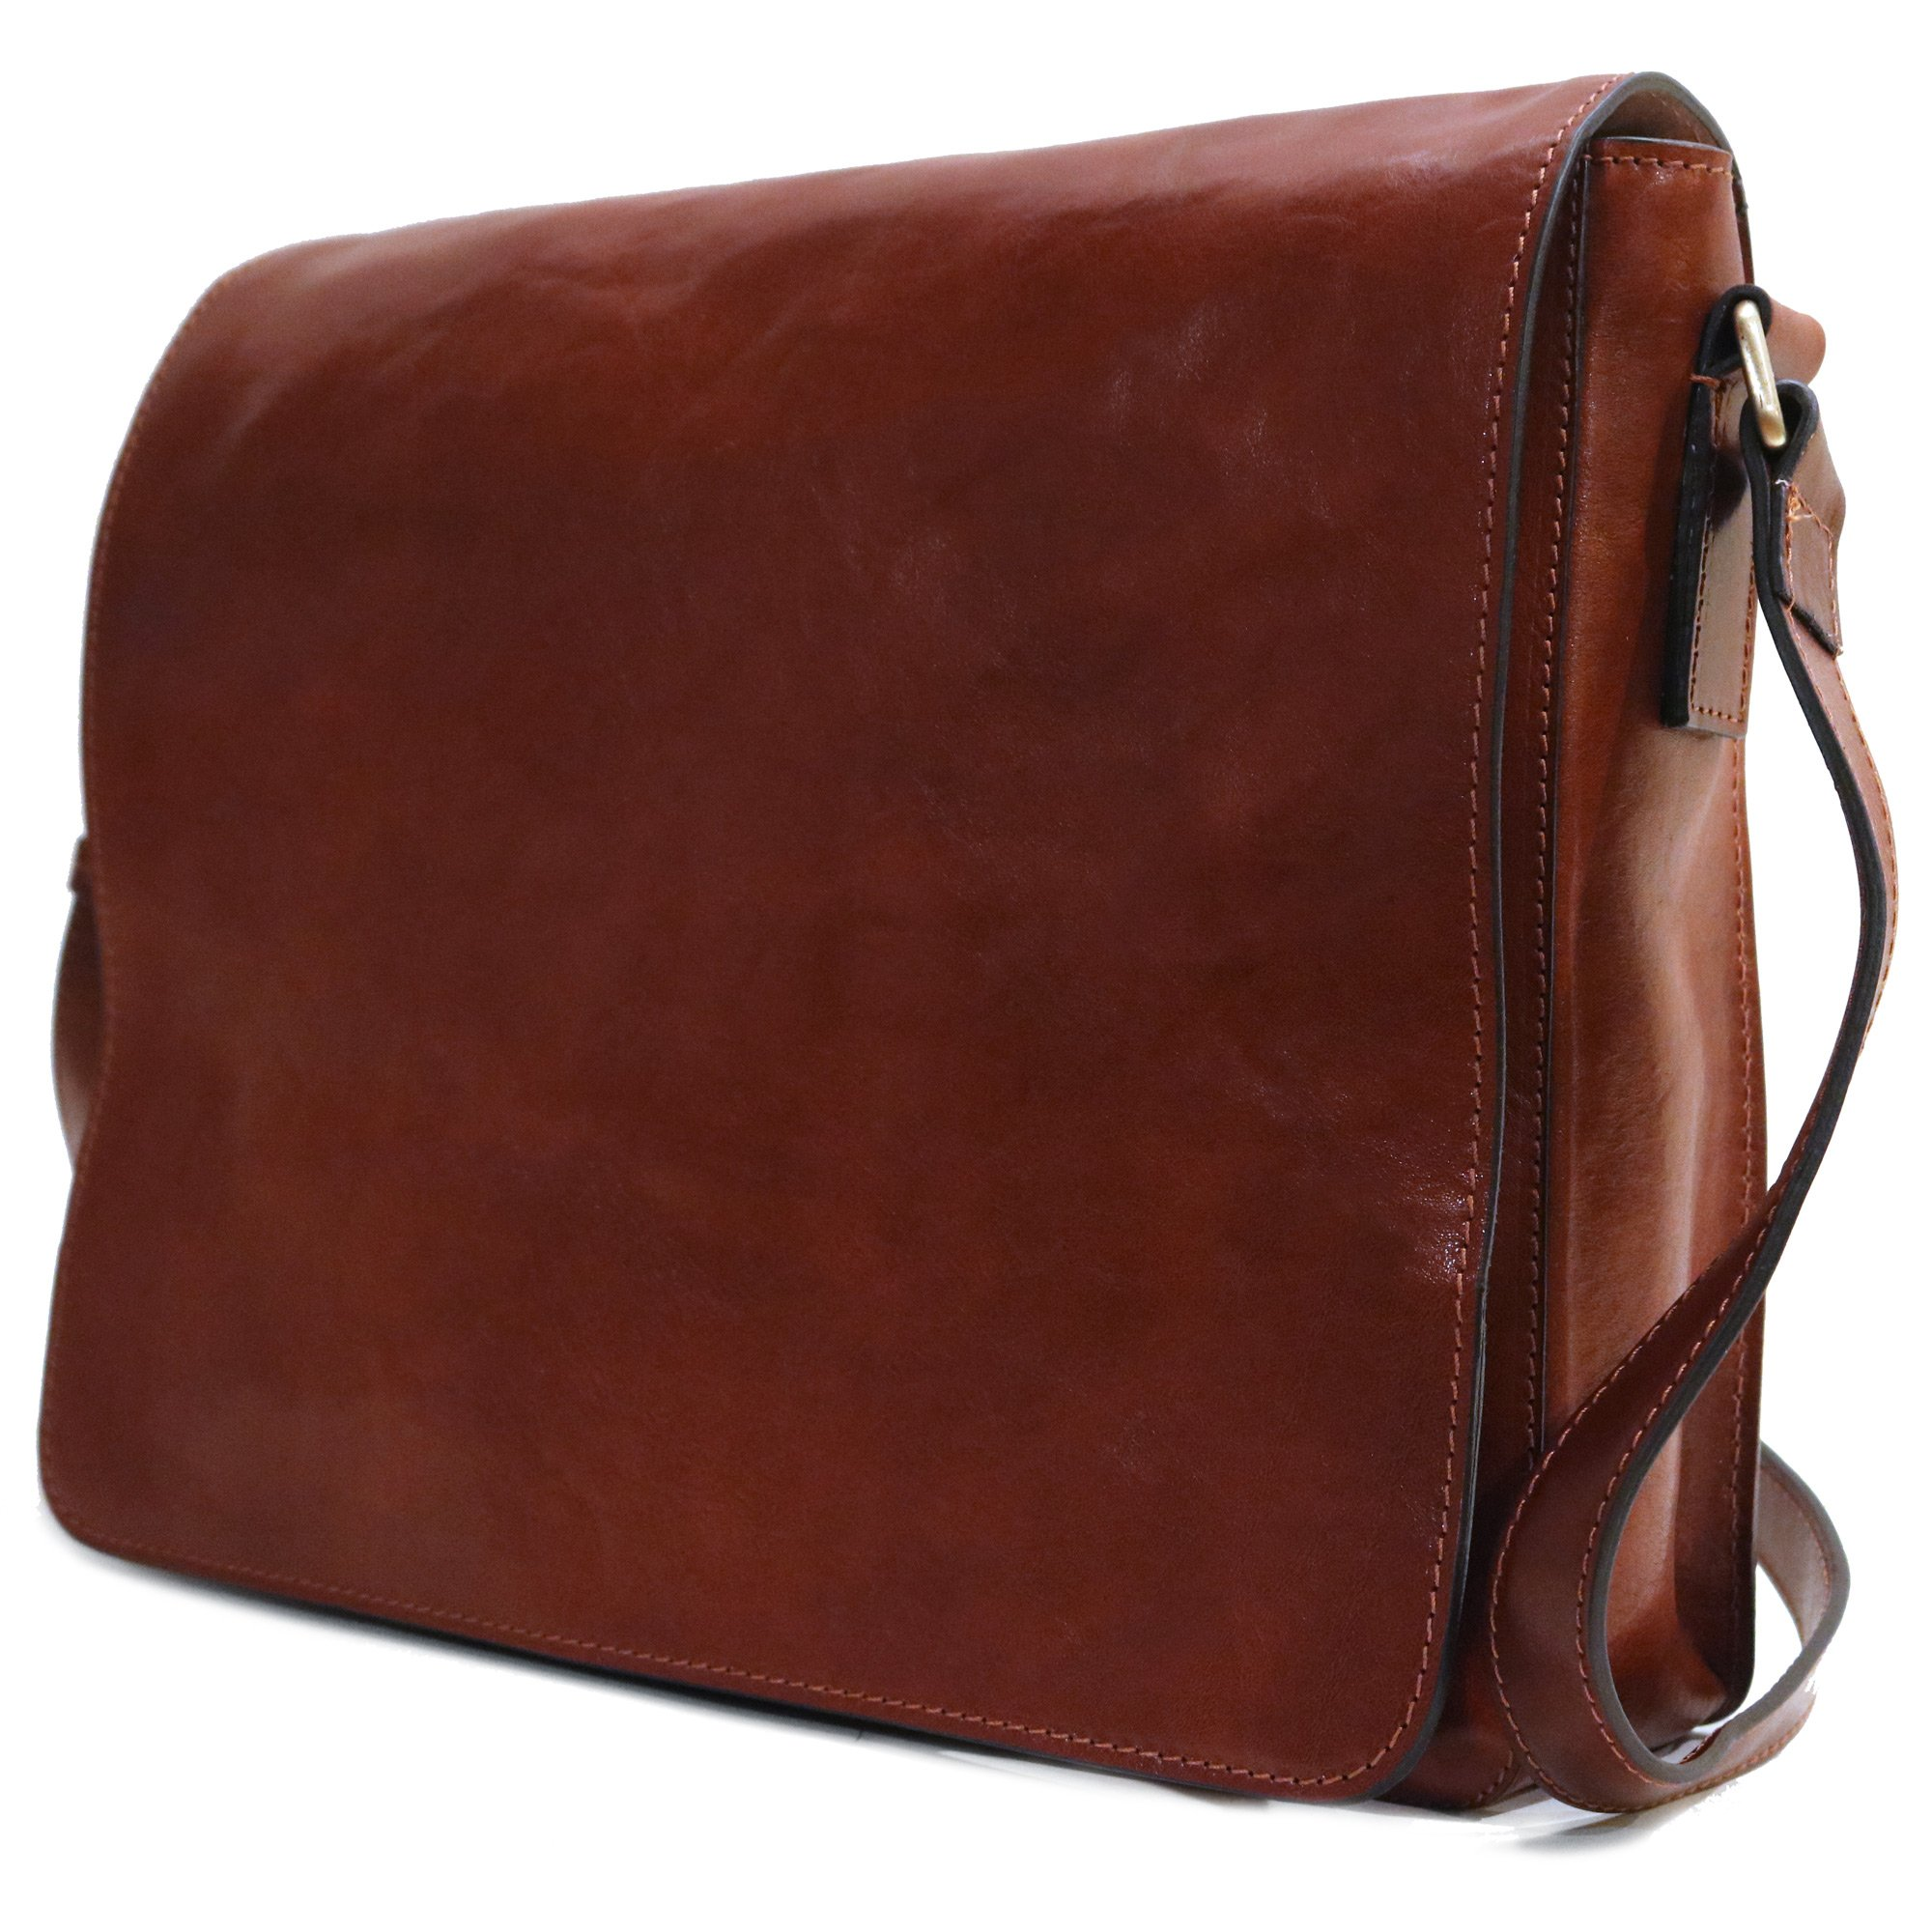 Floto Firenze Messenger Bag in Brown Full Grain Calfskin Leather - Large